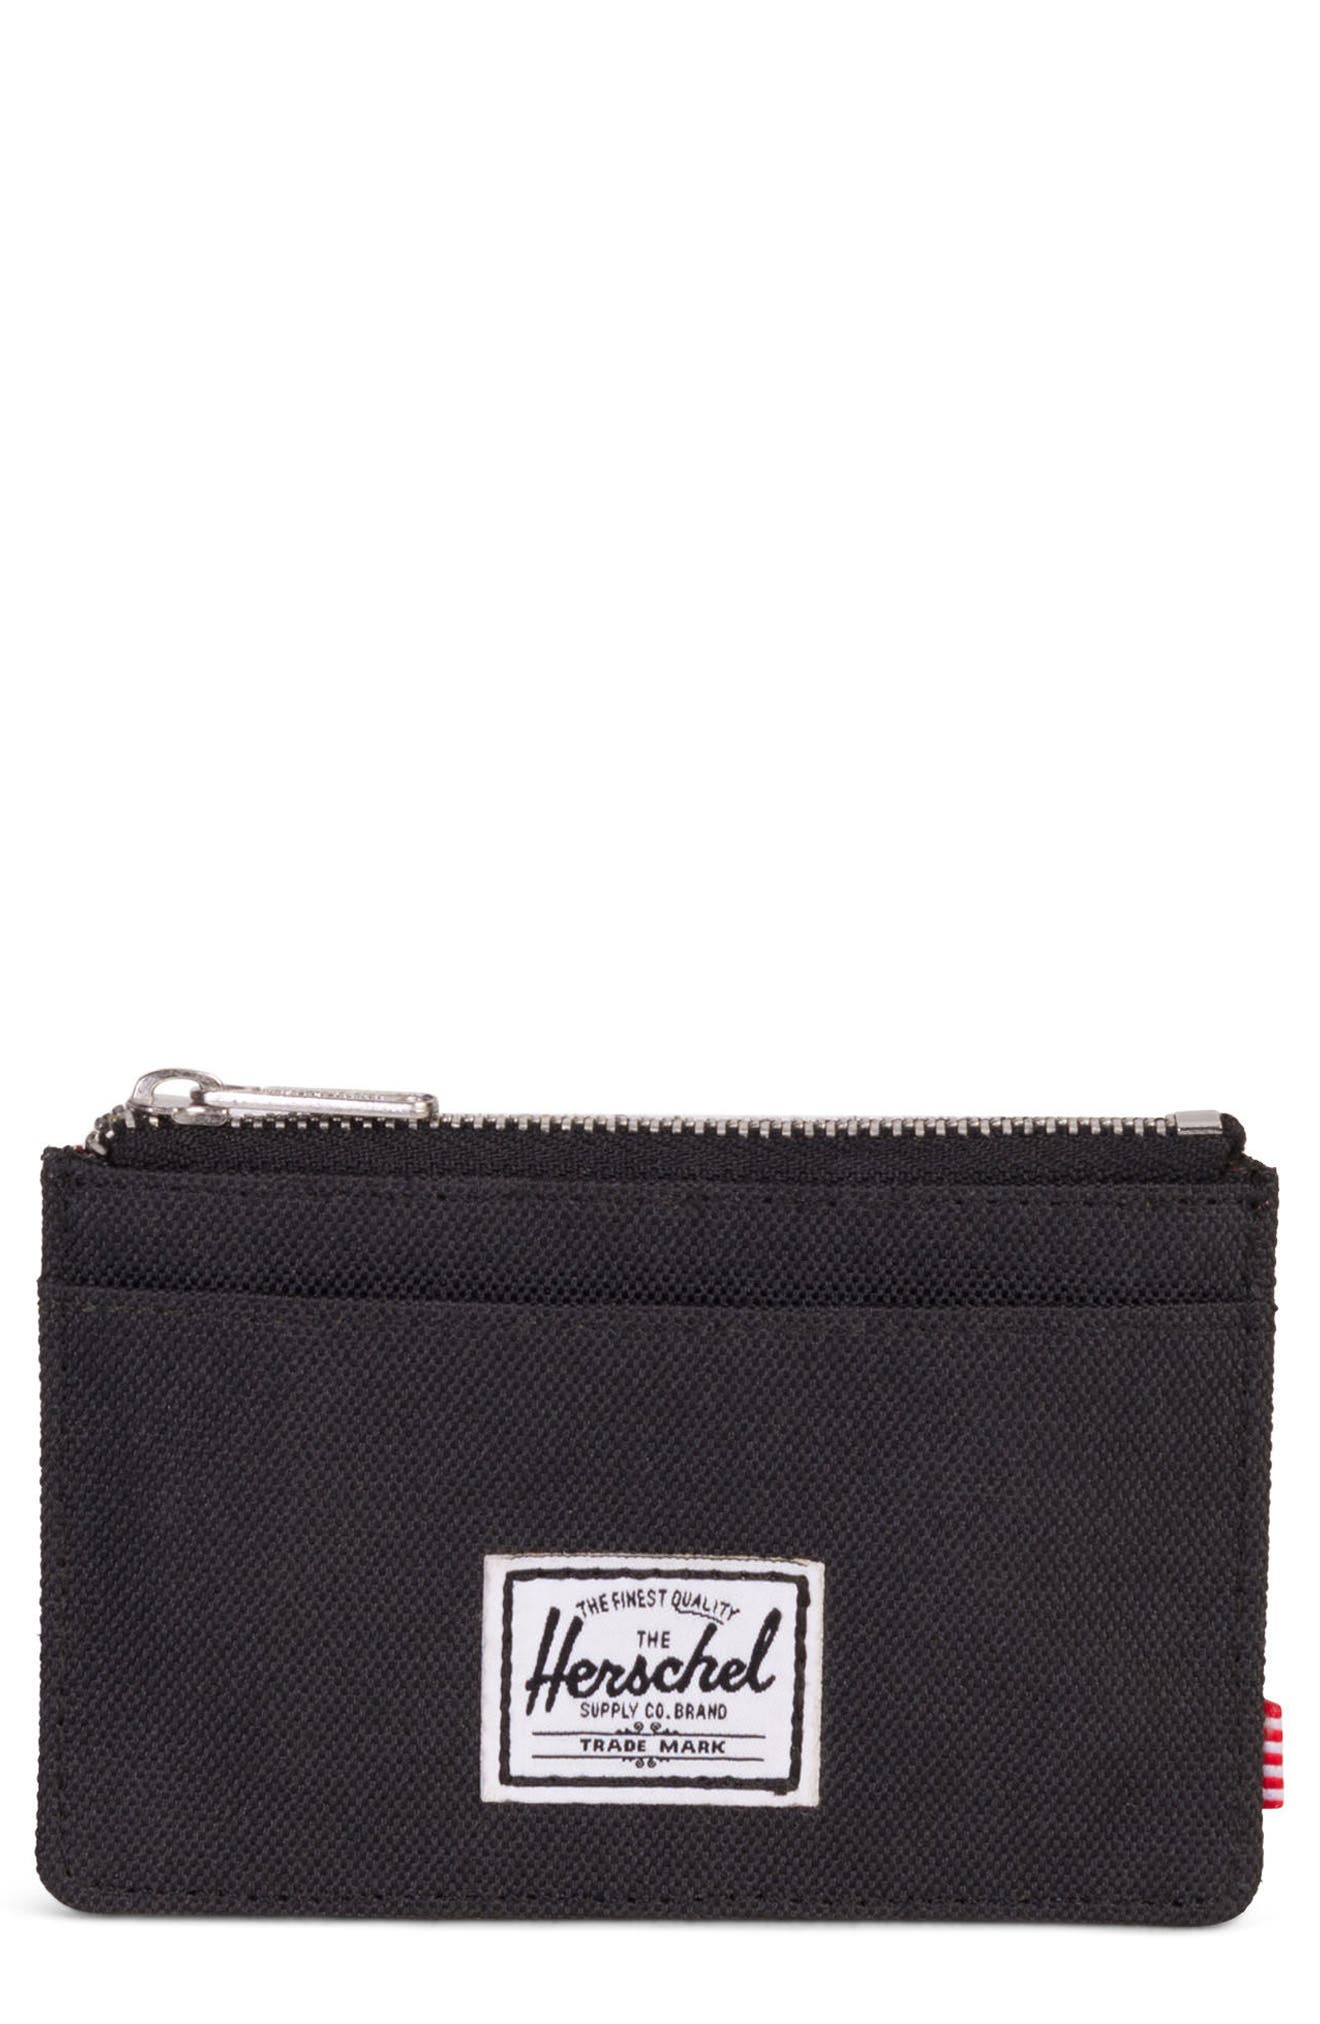 Men\'s Card Cases Wallets | Nordstrom